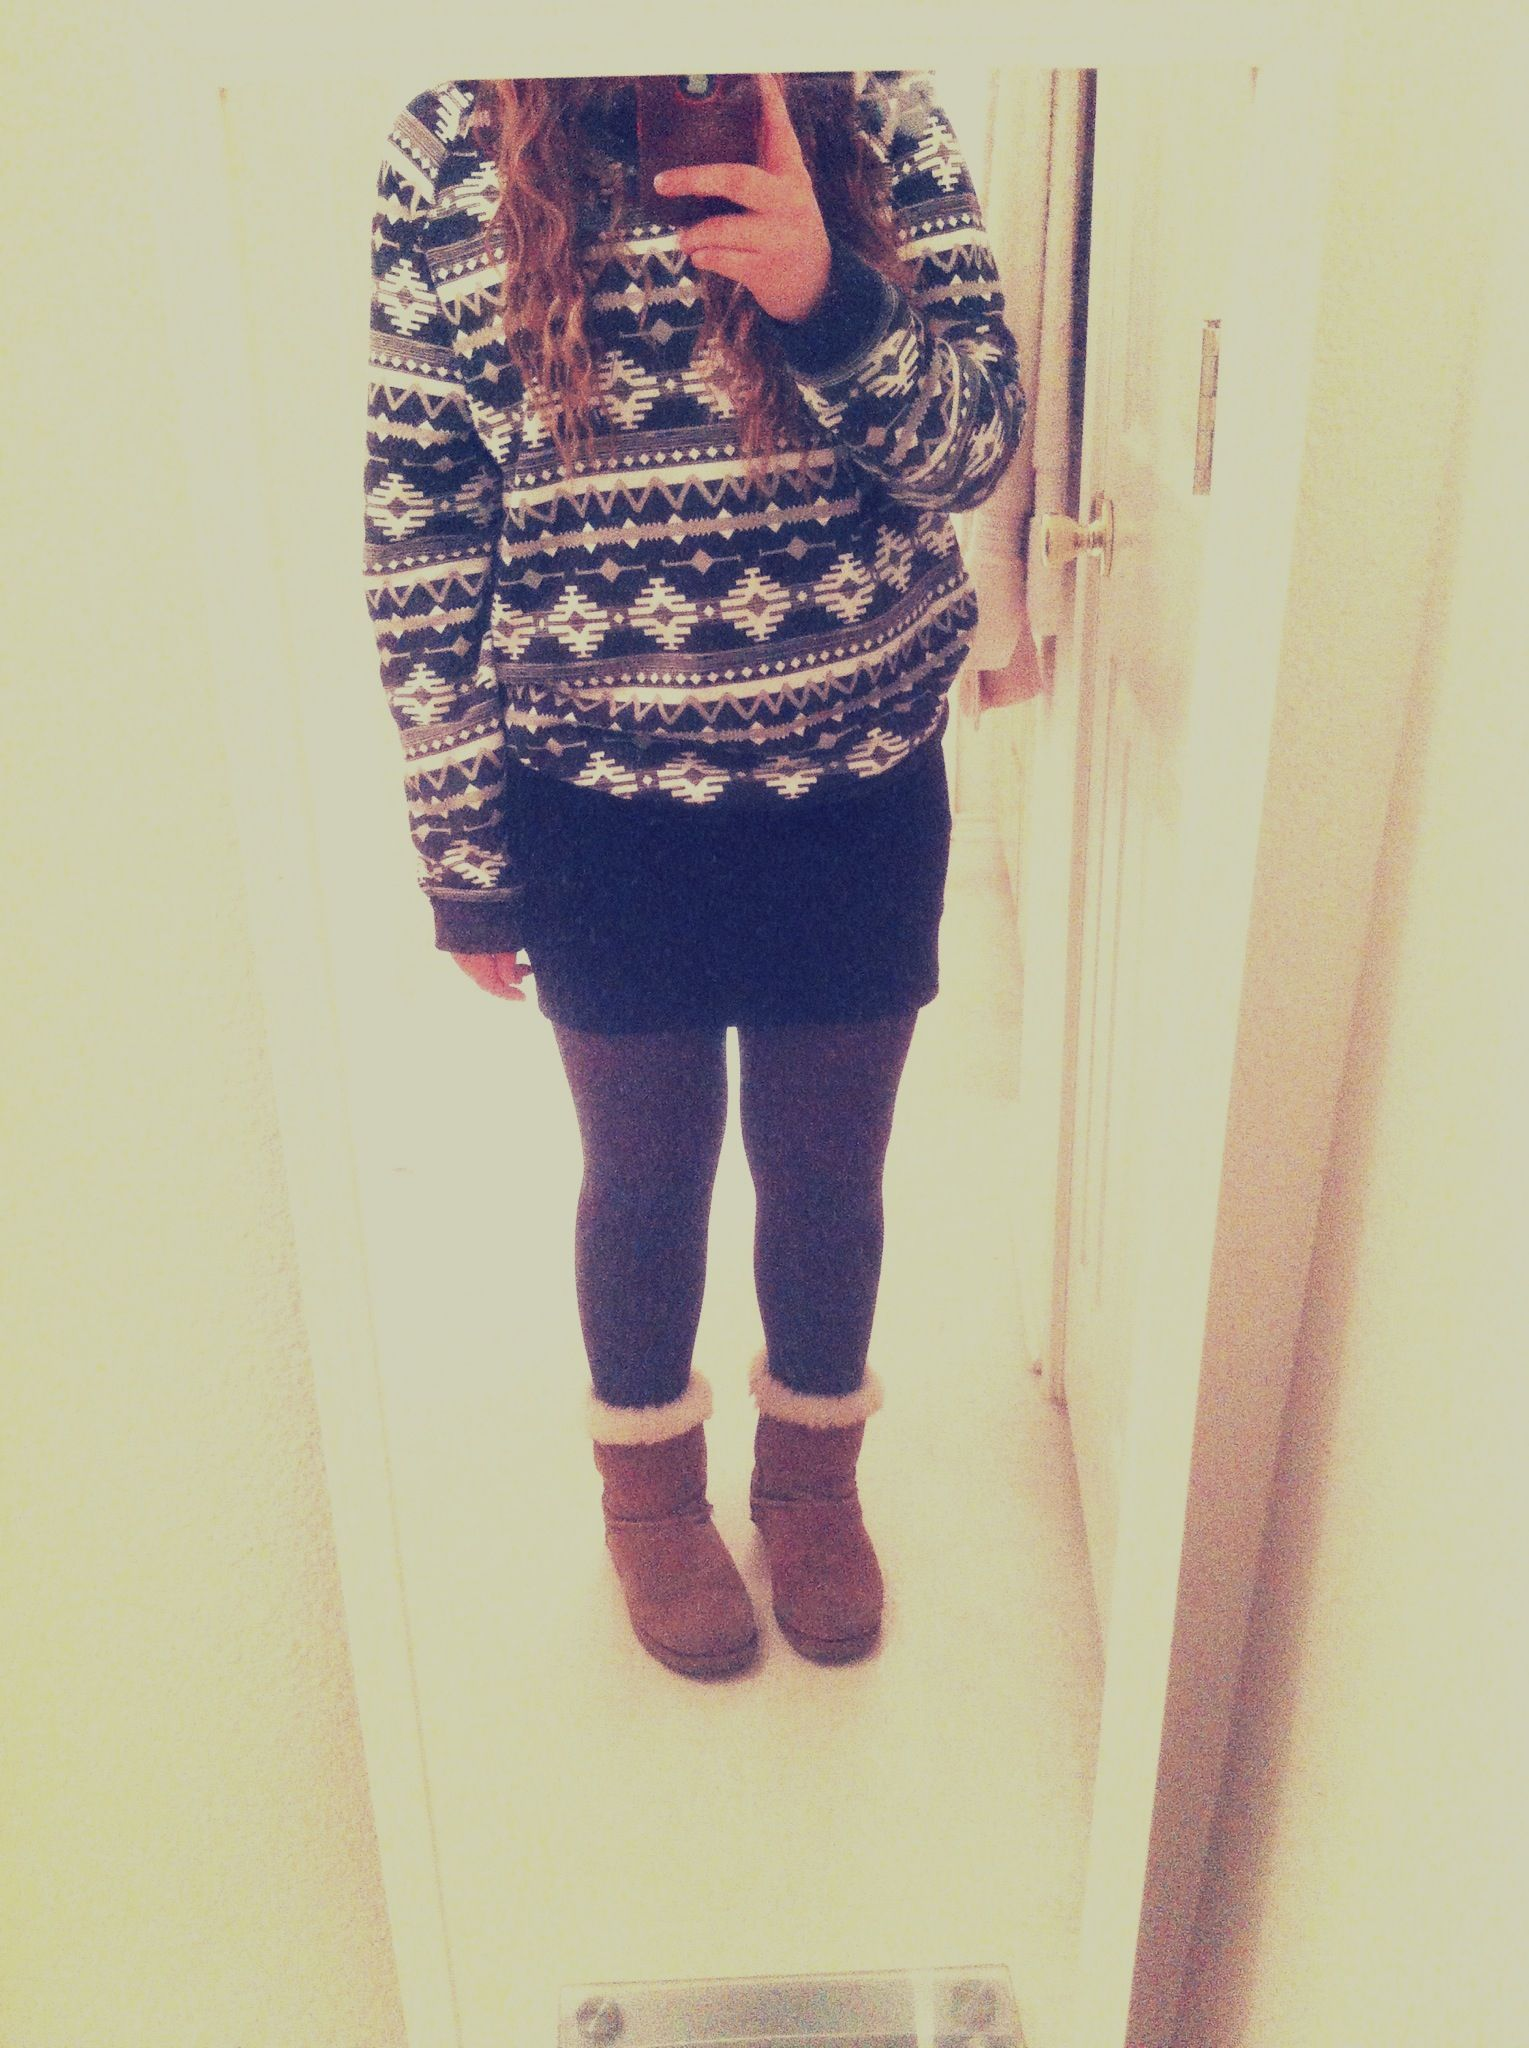 Mer outfit today~ #fashion #sweater #winter #leggings #boots